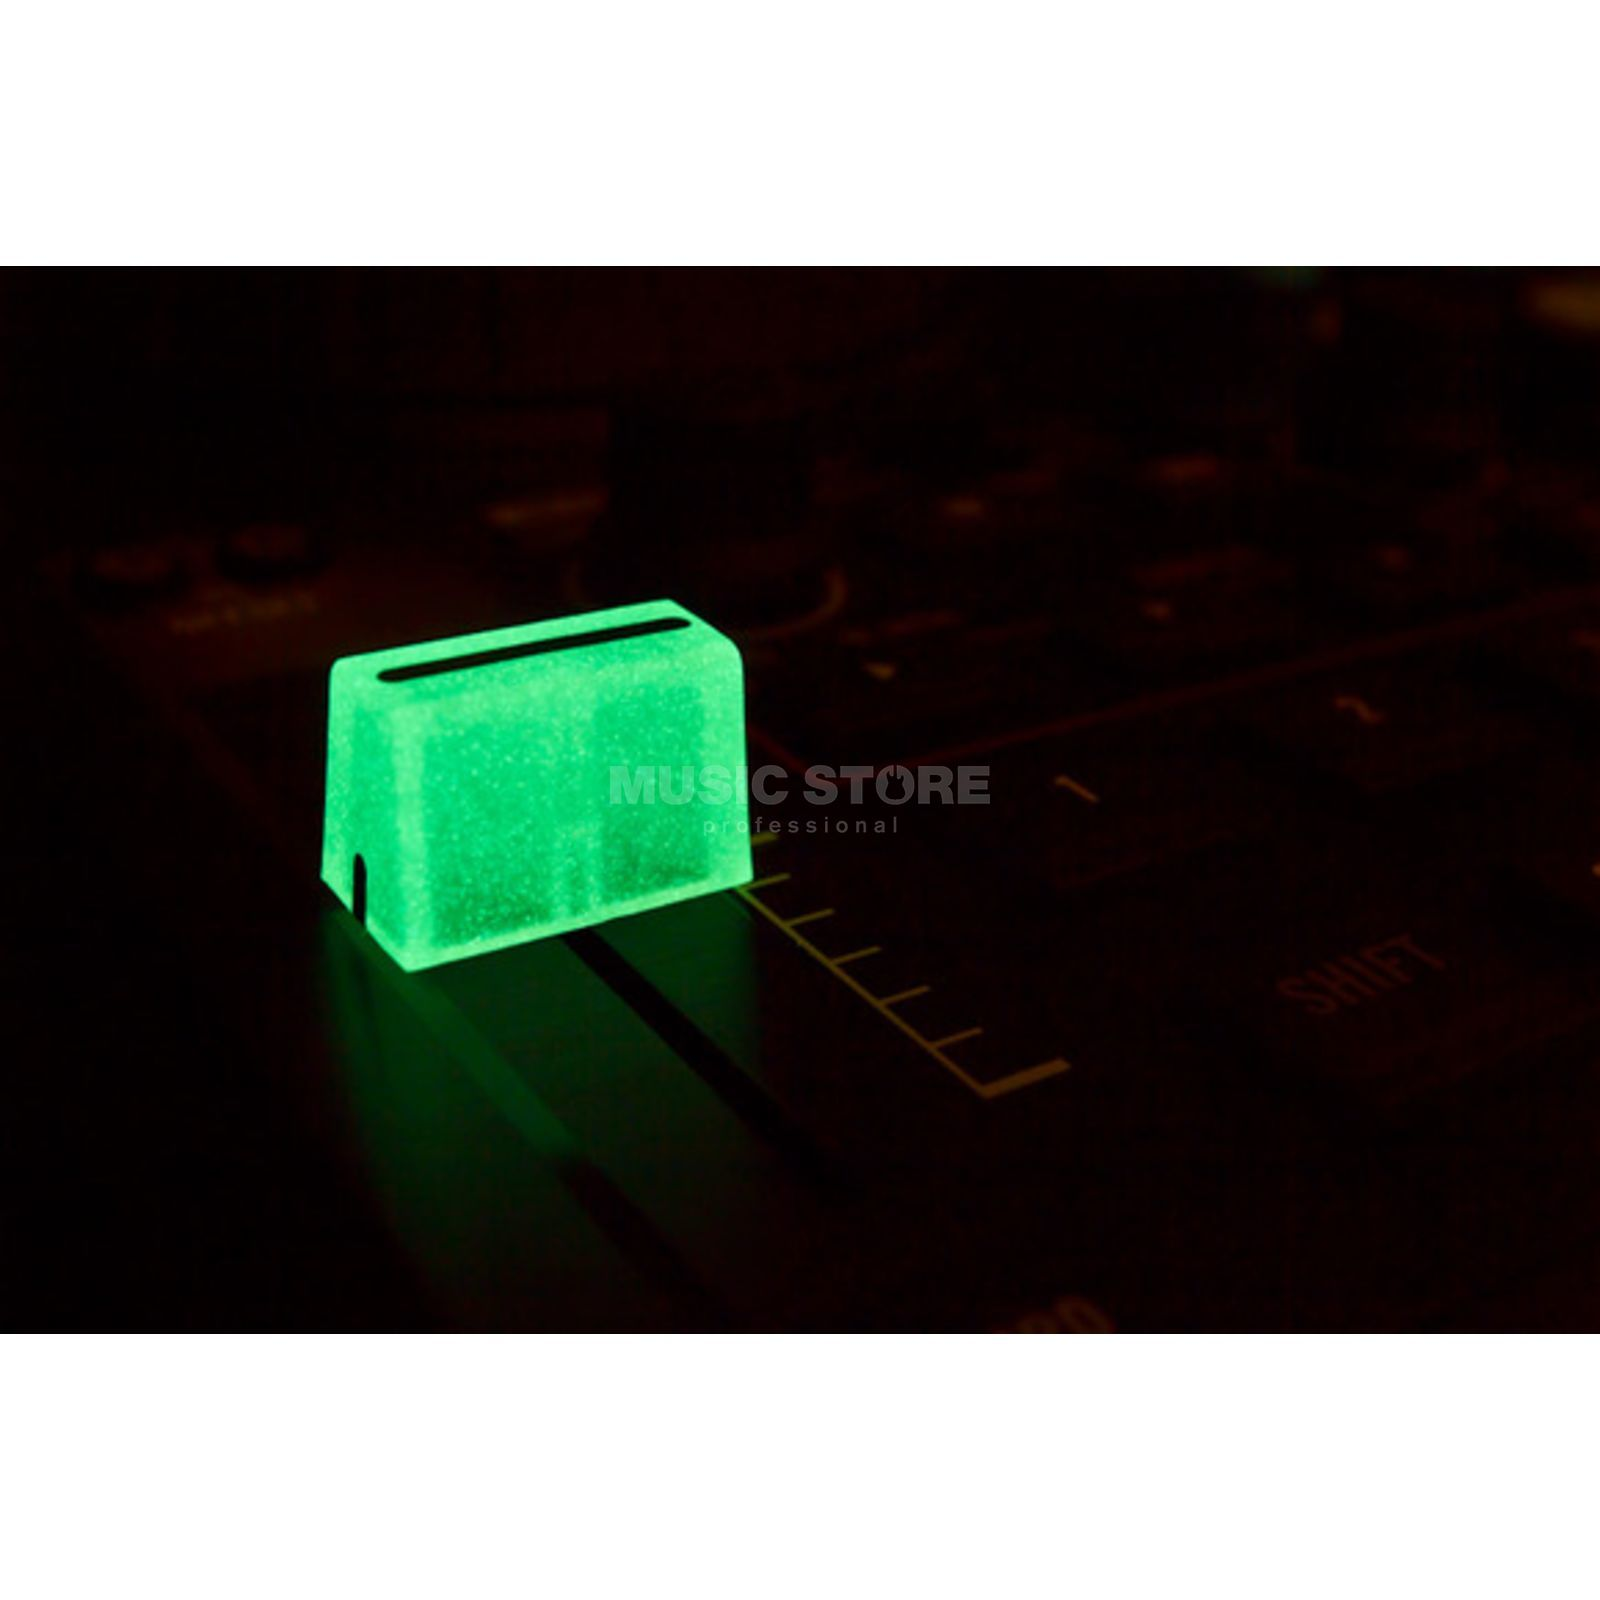 DJ TECHTOOLS Chroma Caps Fader Glow in the Dark Produktbild